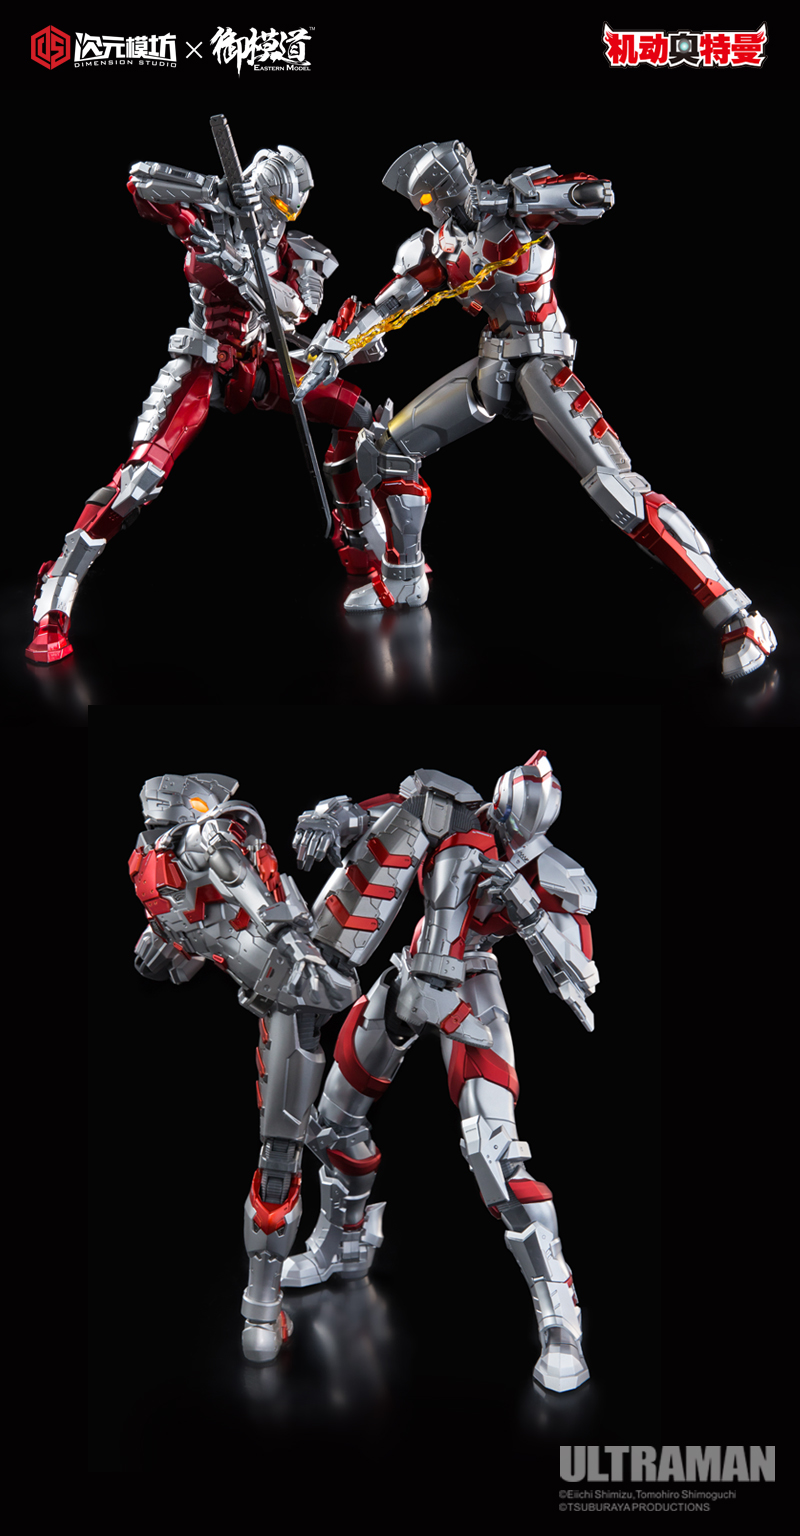 male - NEW PRODUCT: Dimension Mould X X Moto Road: 1/6 Mobile Ultraman Alloy Finished Series - Ess Altman 18214410